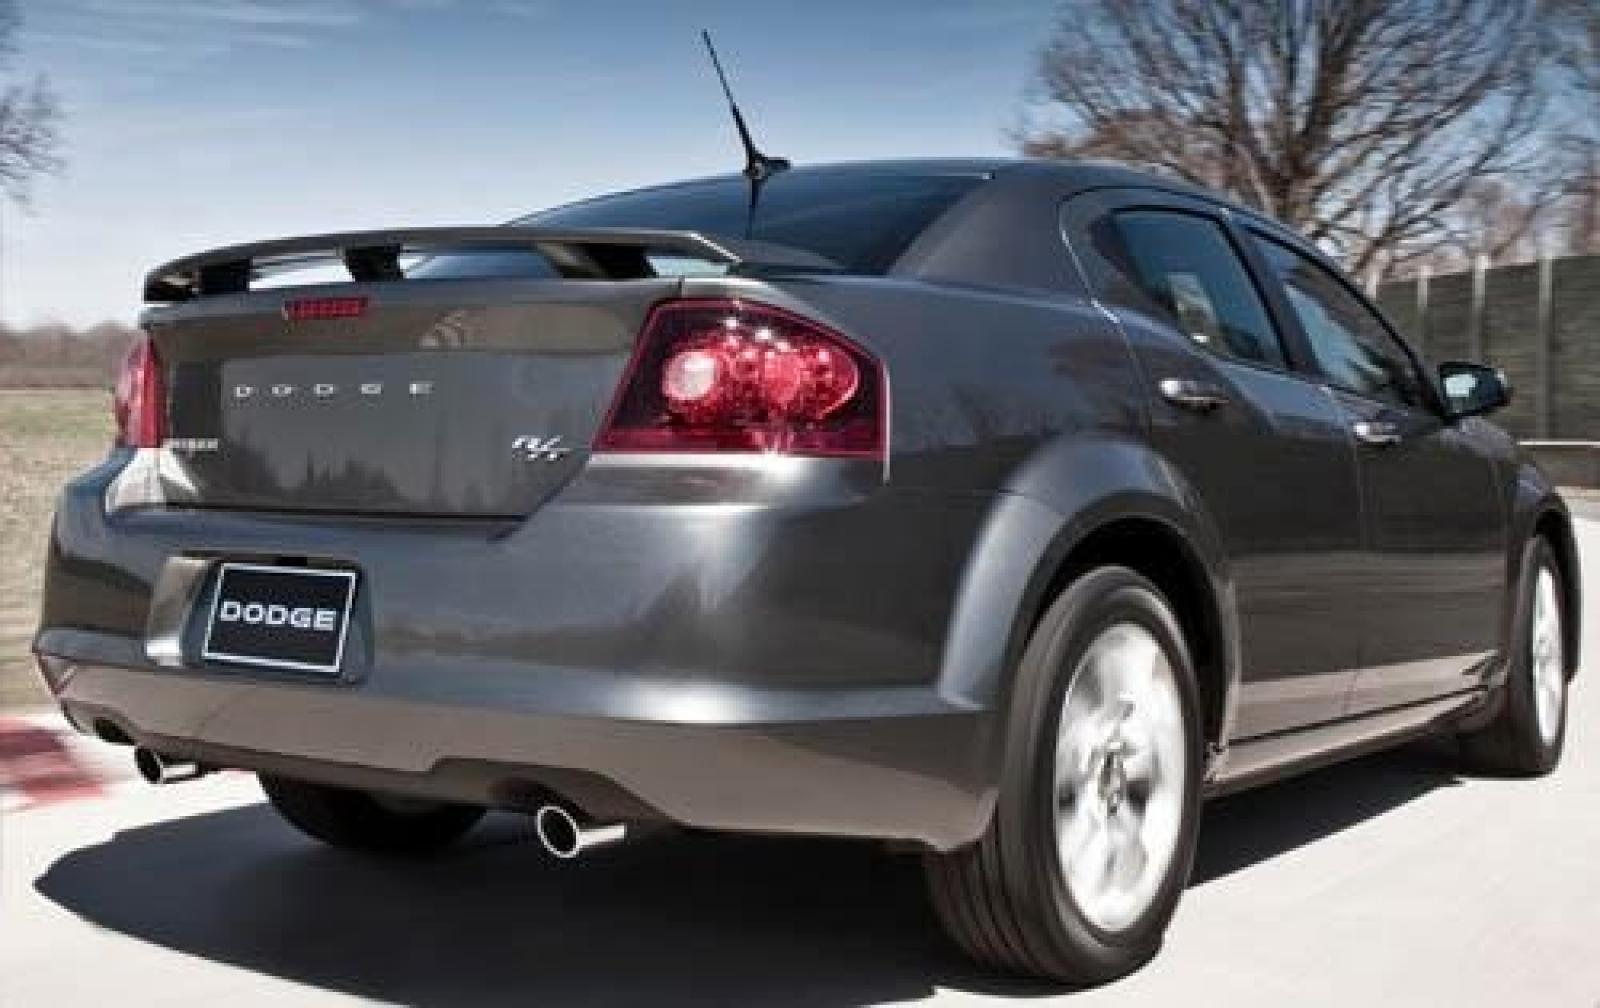 800 1024 1280 1600 origin 2012 dodge avenger